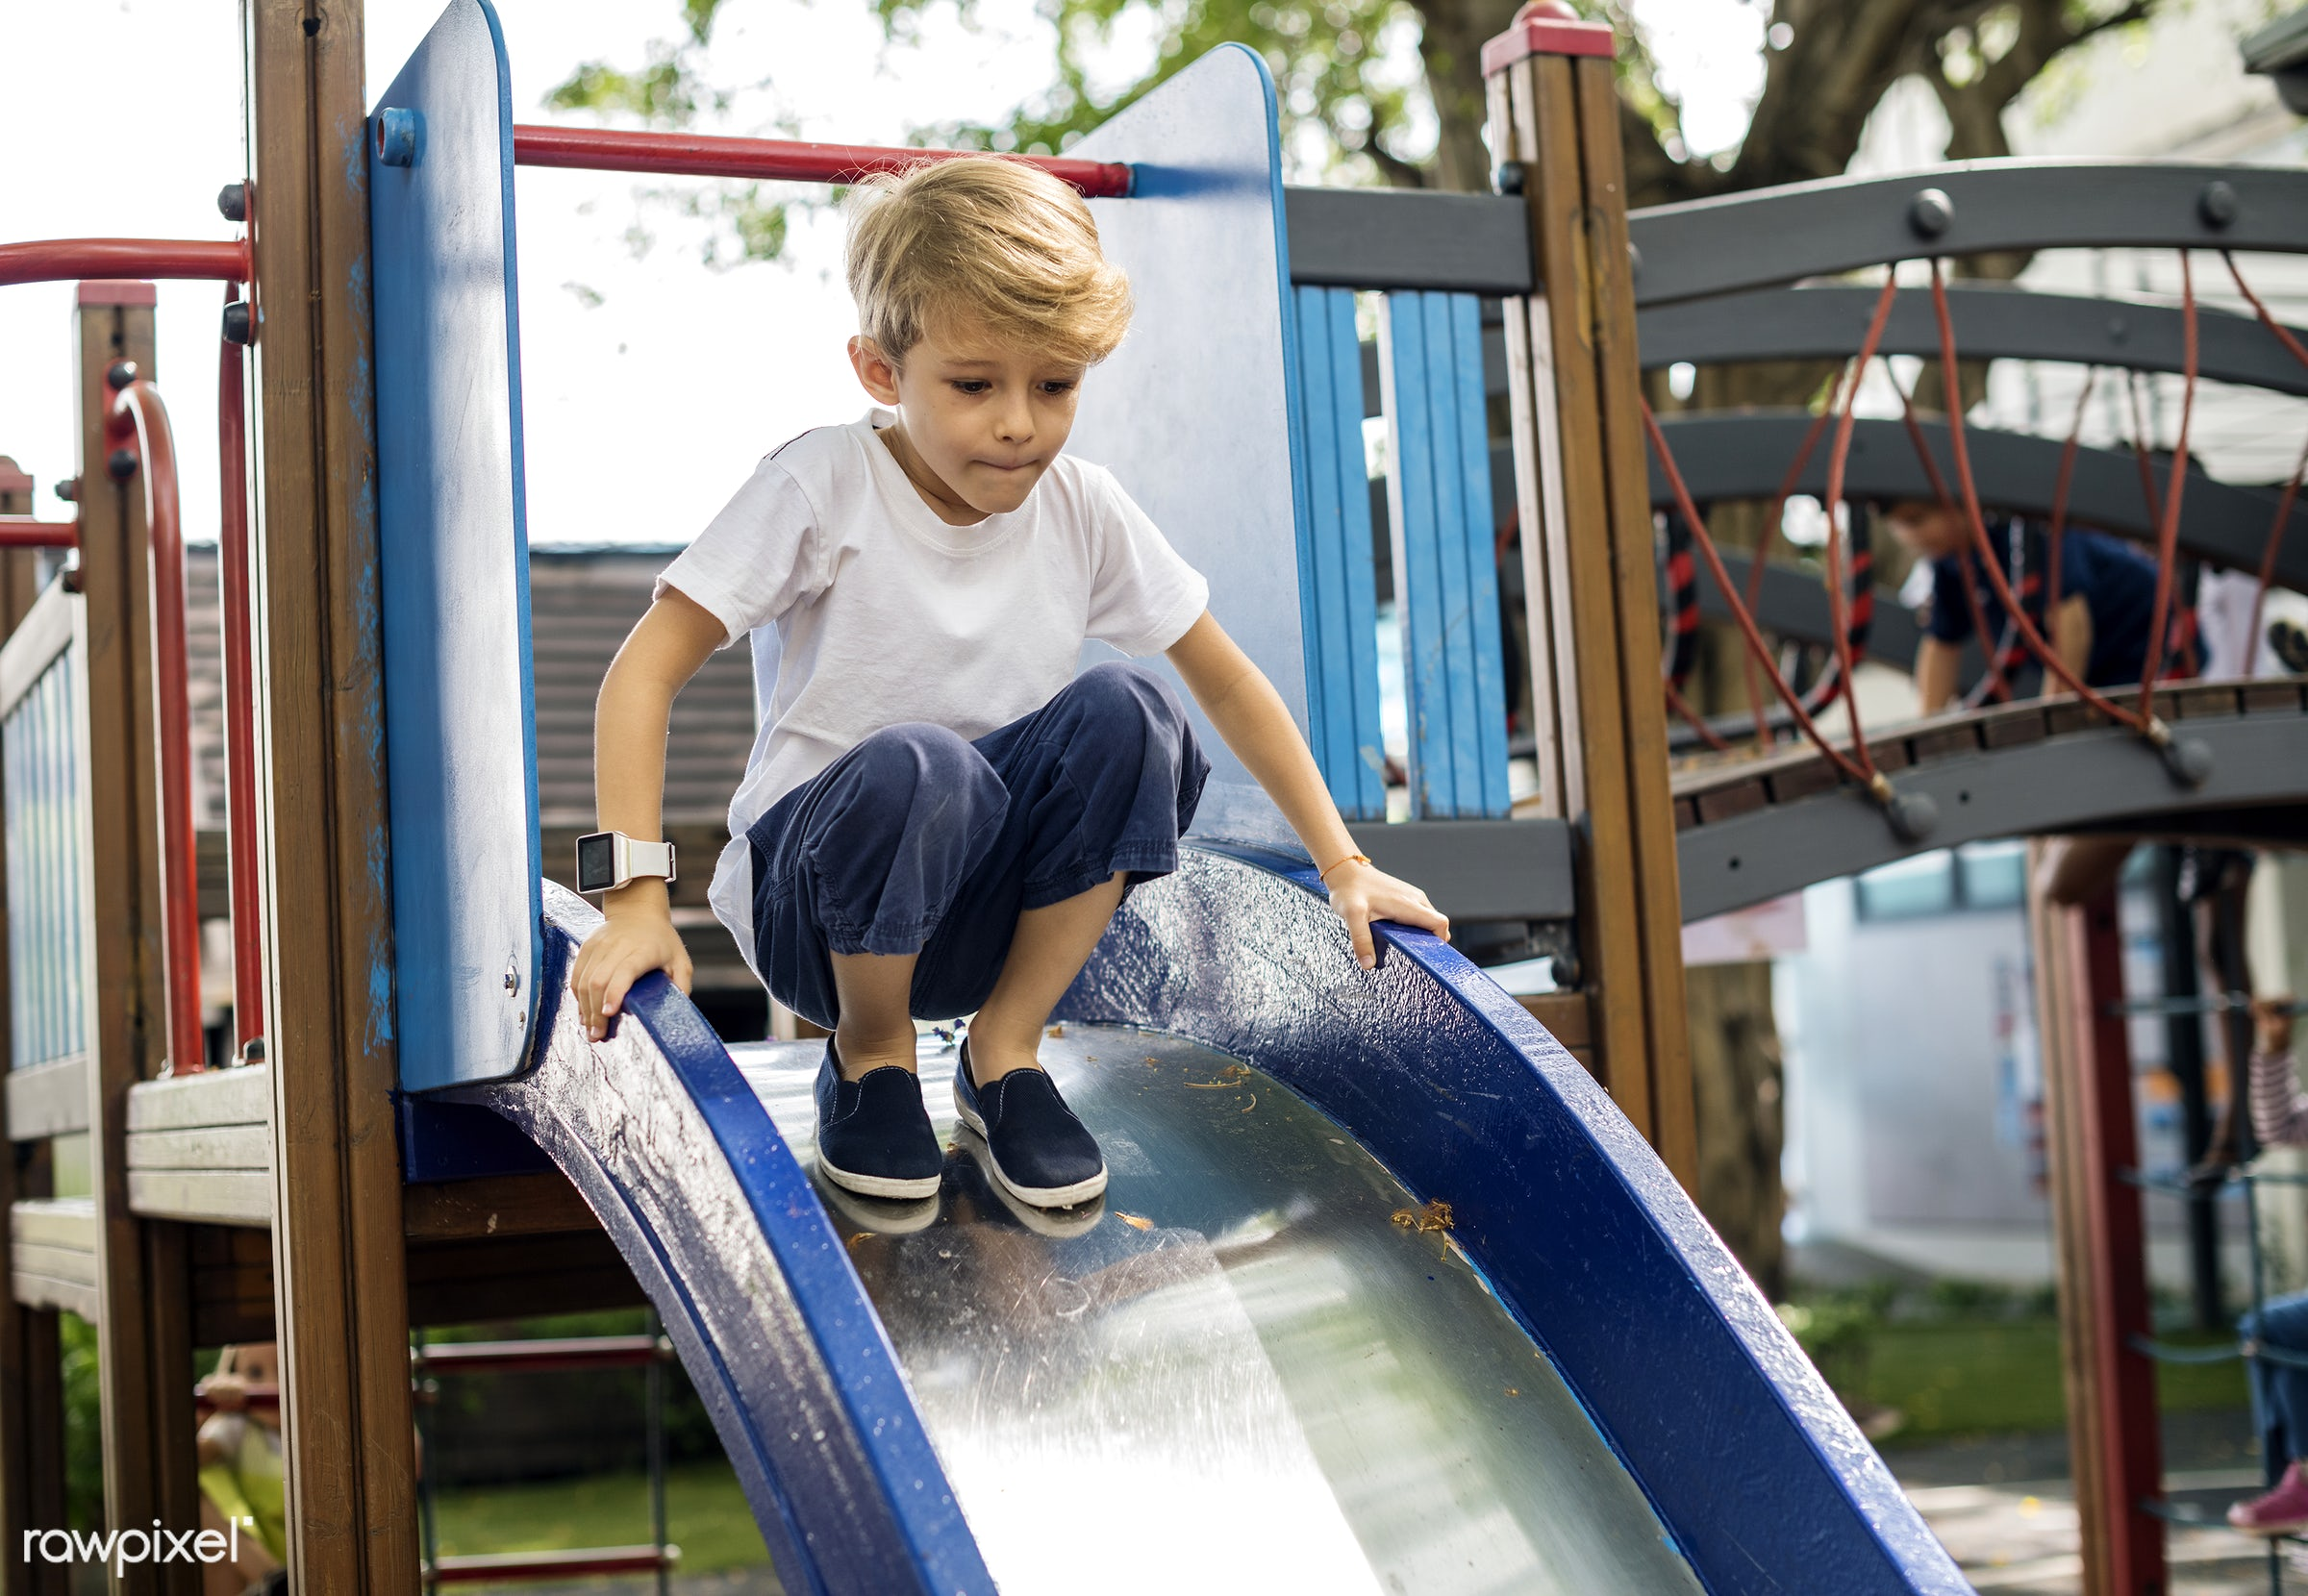 Happy kids at elementary school - playground, park, leisure, young, kid, caucasian, child, playing, blonde, recreational,...